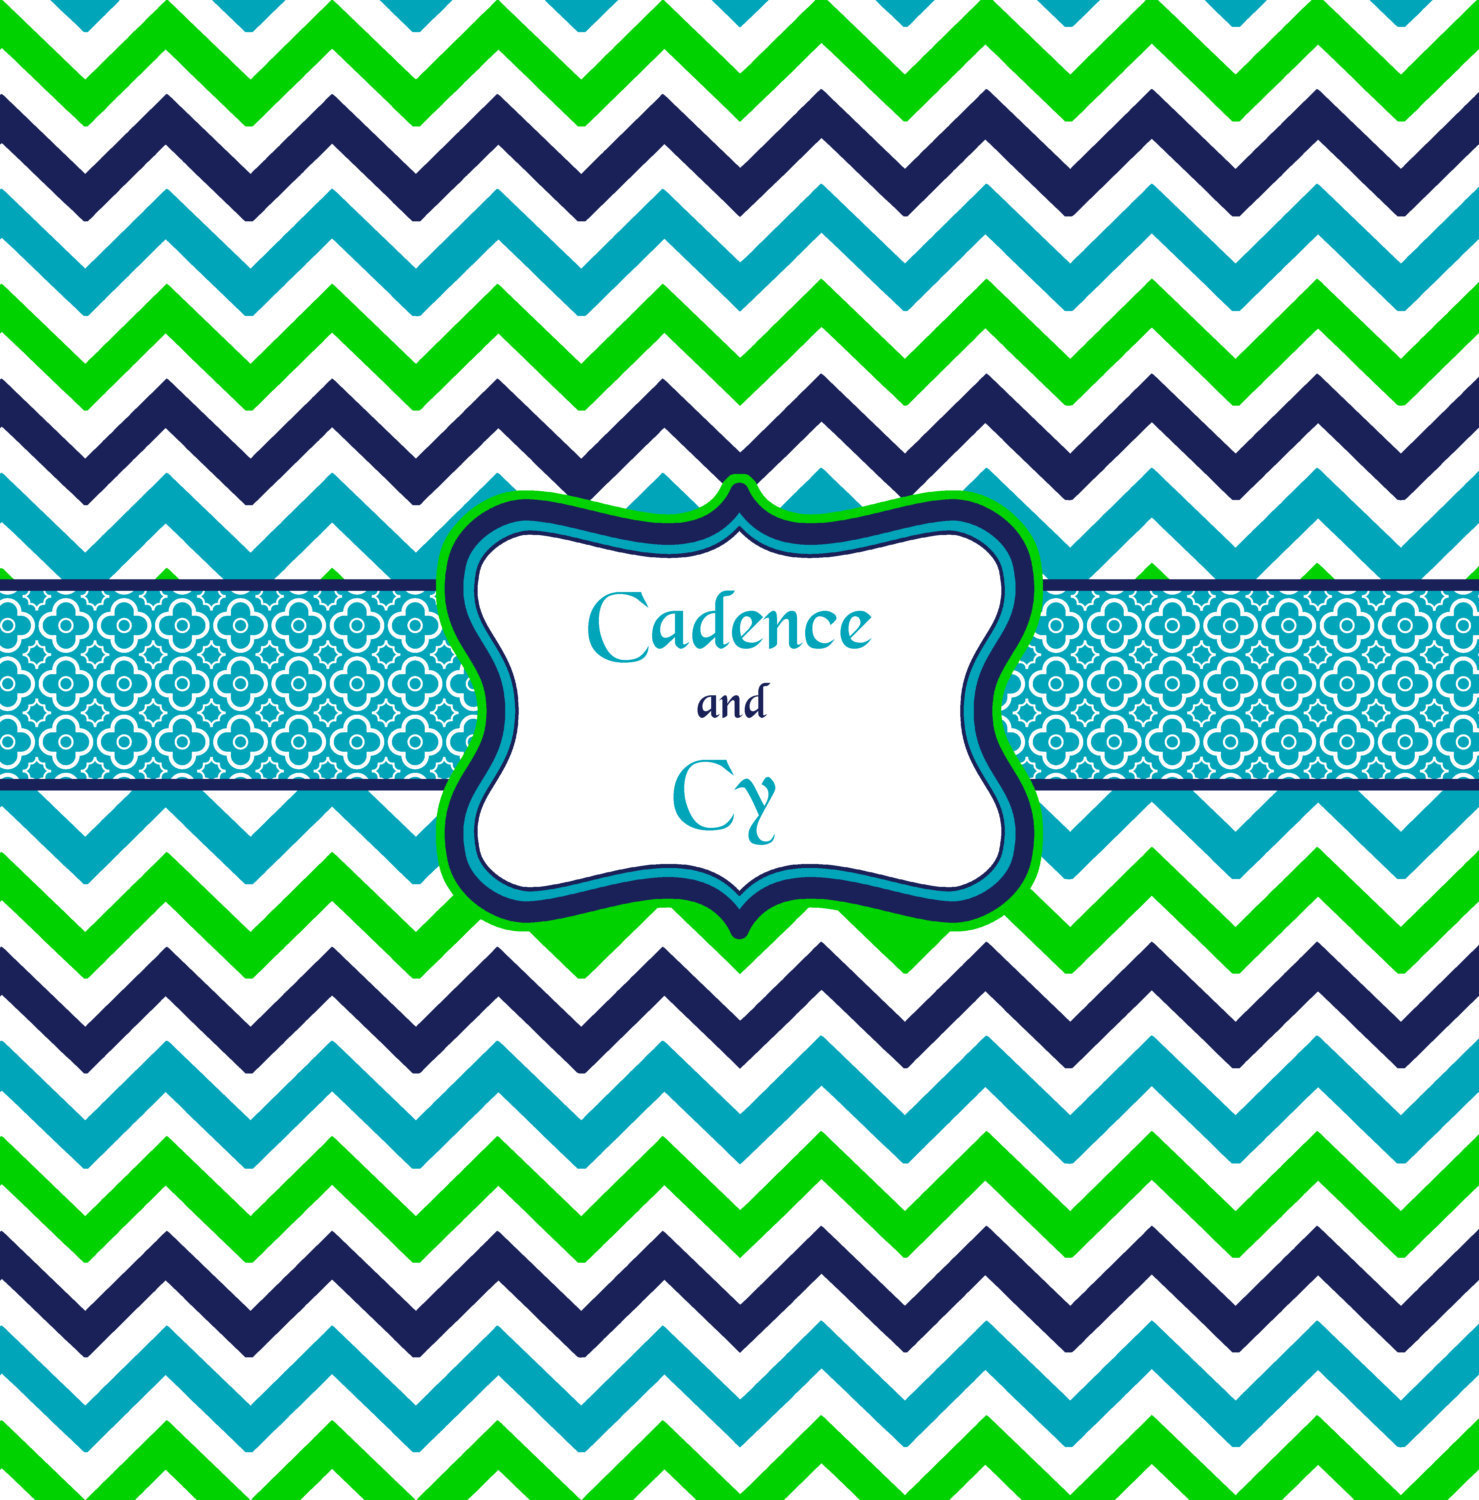 Shower Curtain - Multi Color Lime, Navy, Turquoise and White - Accent Any colors image 2